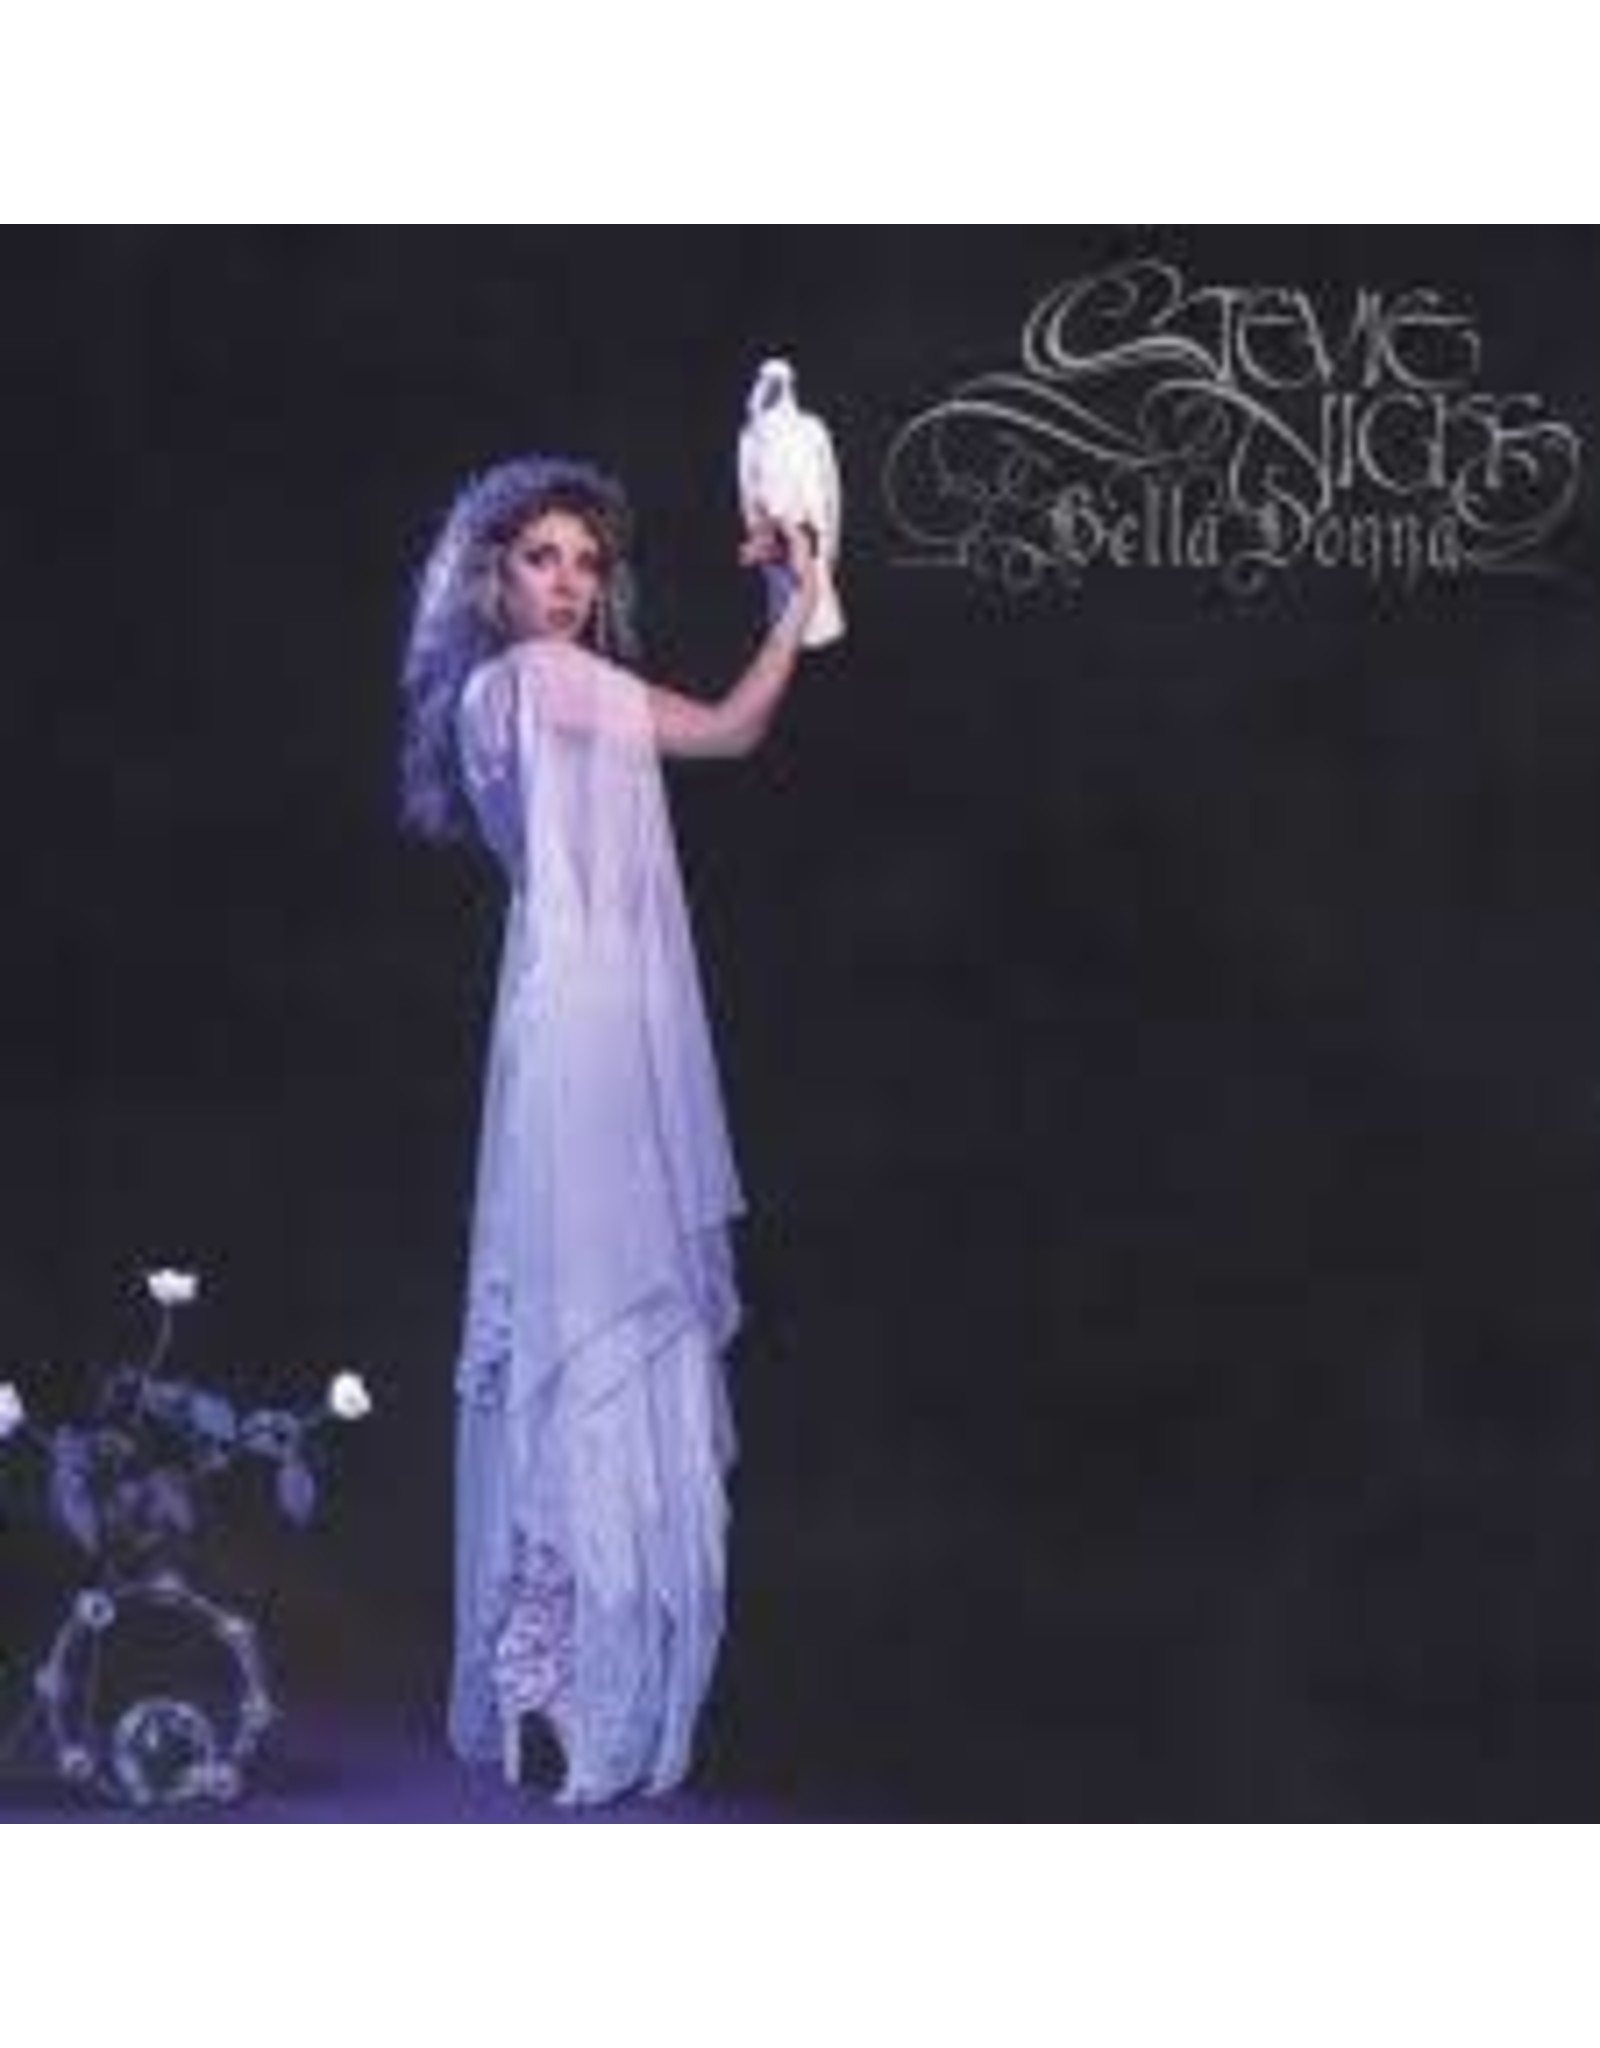 Vinyl Stevie Nicks - Belladonna